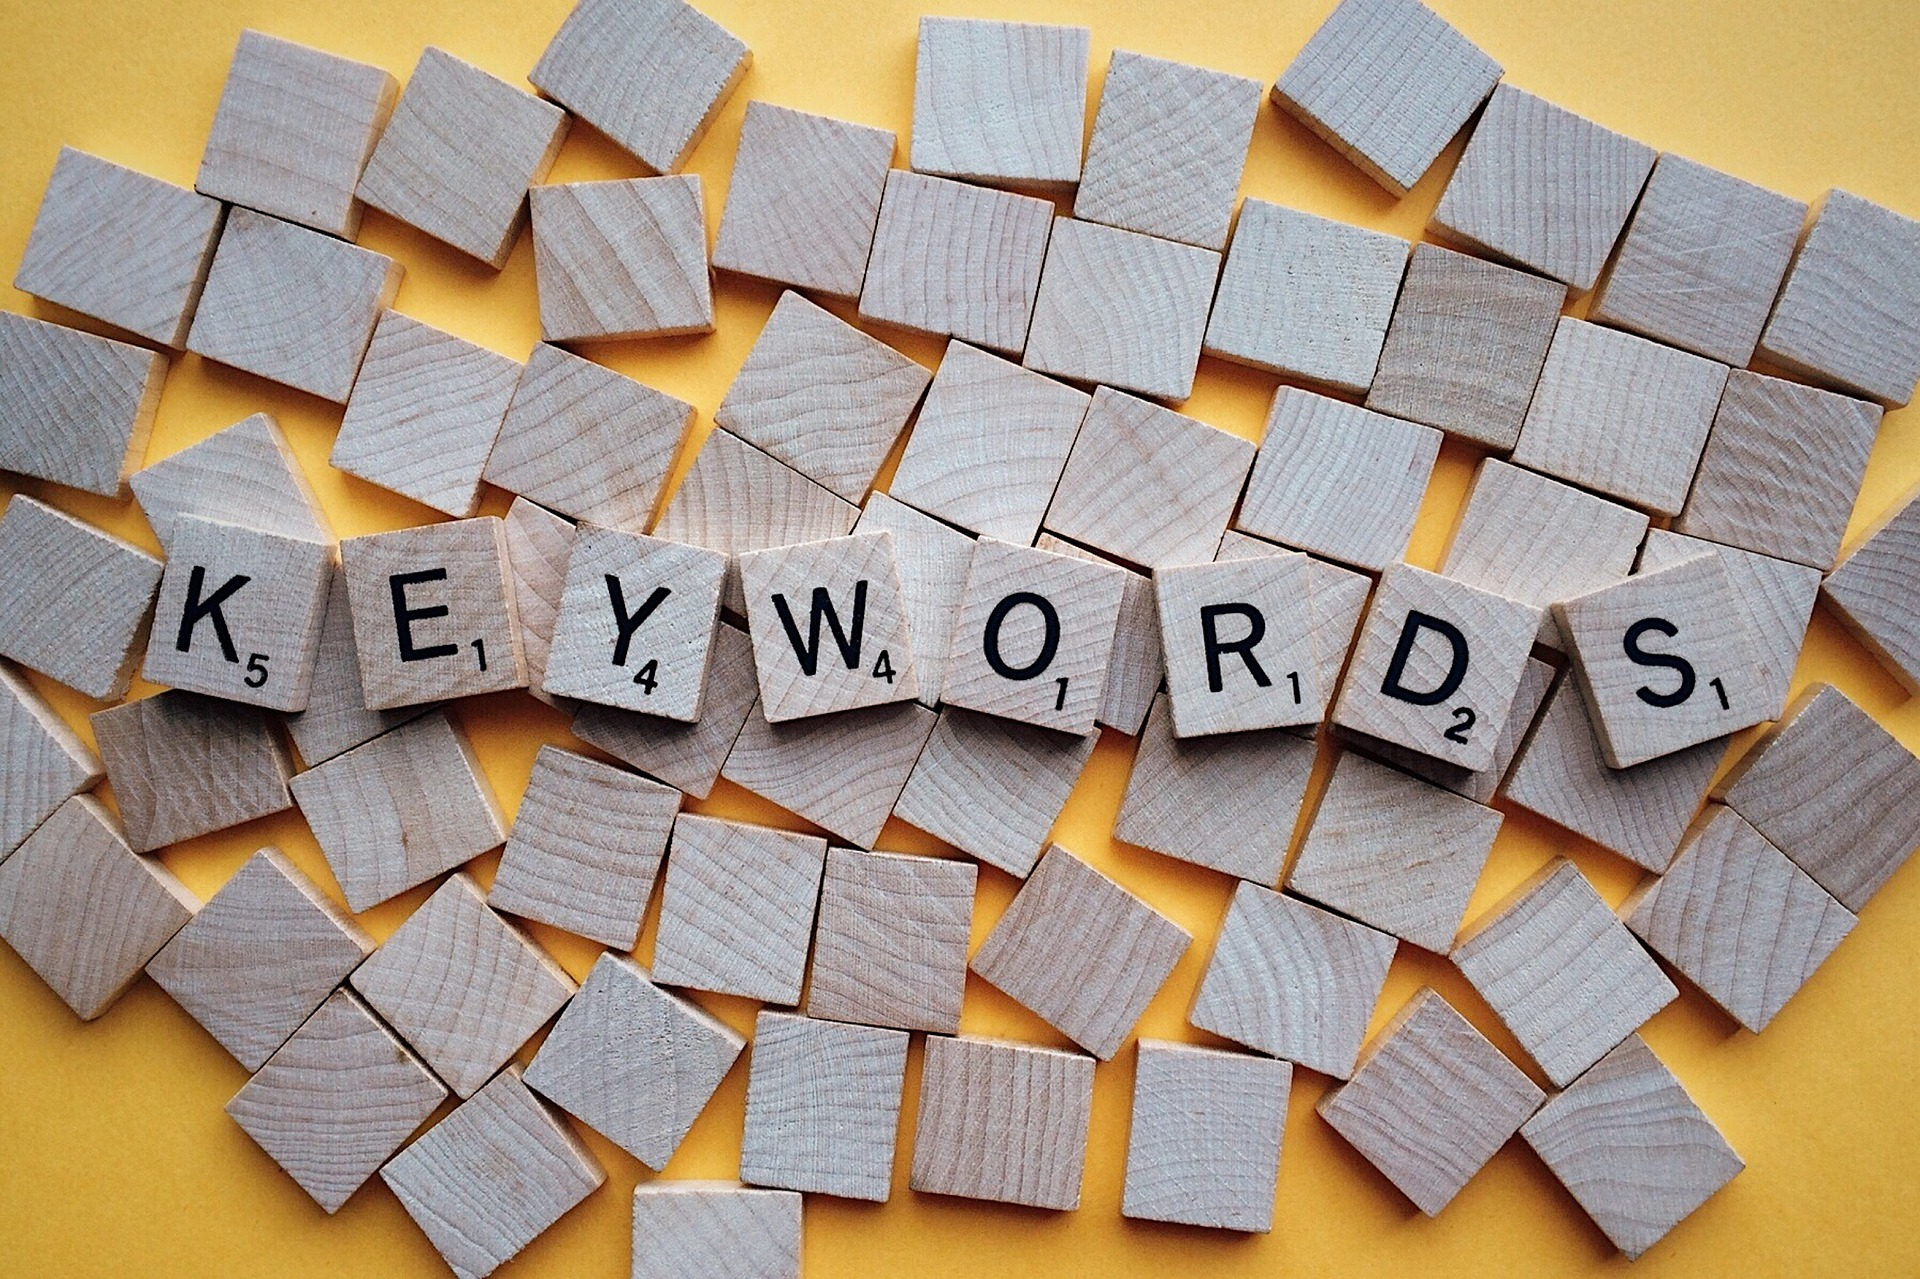 LSI Keywords & Word2Vec